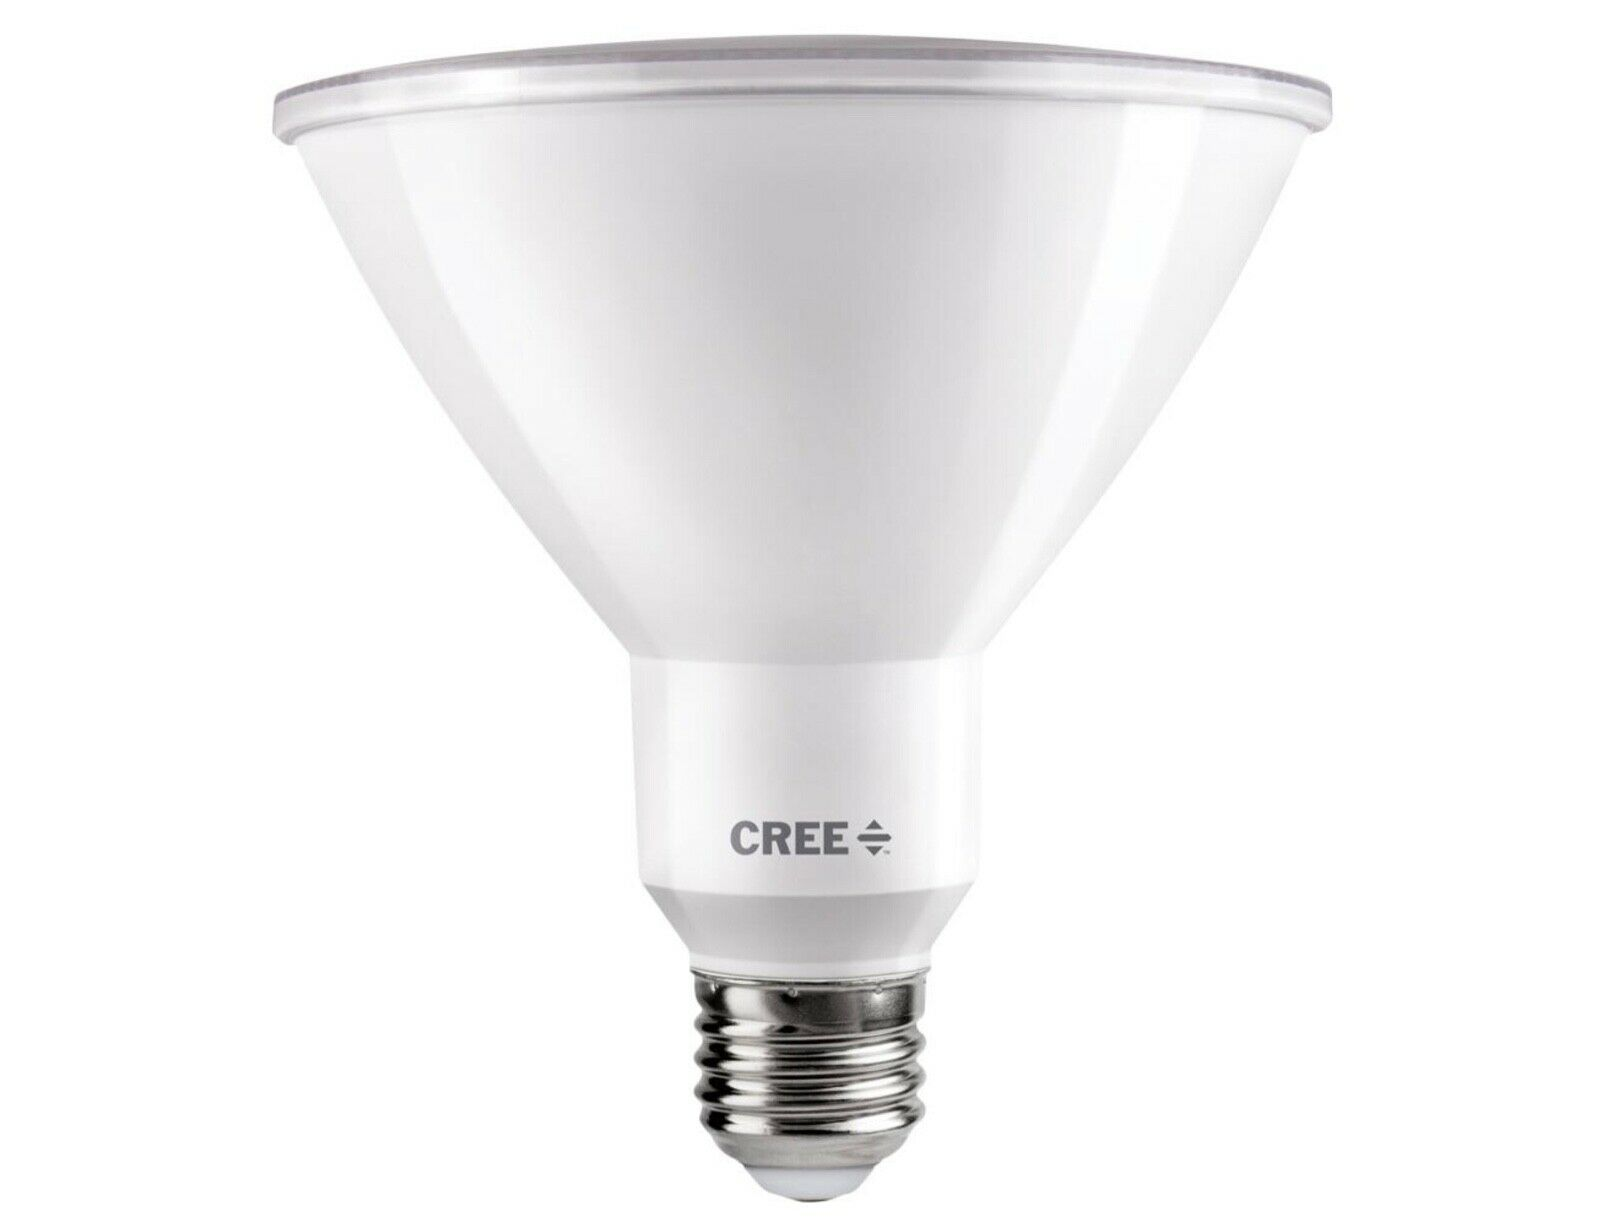 Primary image for Cree 150W Equivalent Bright White (3000K) PAR38 Dimmable Exceptional Light